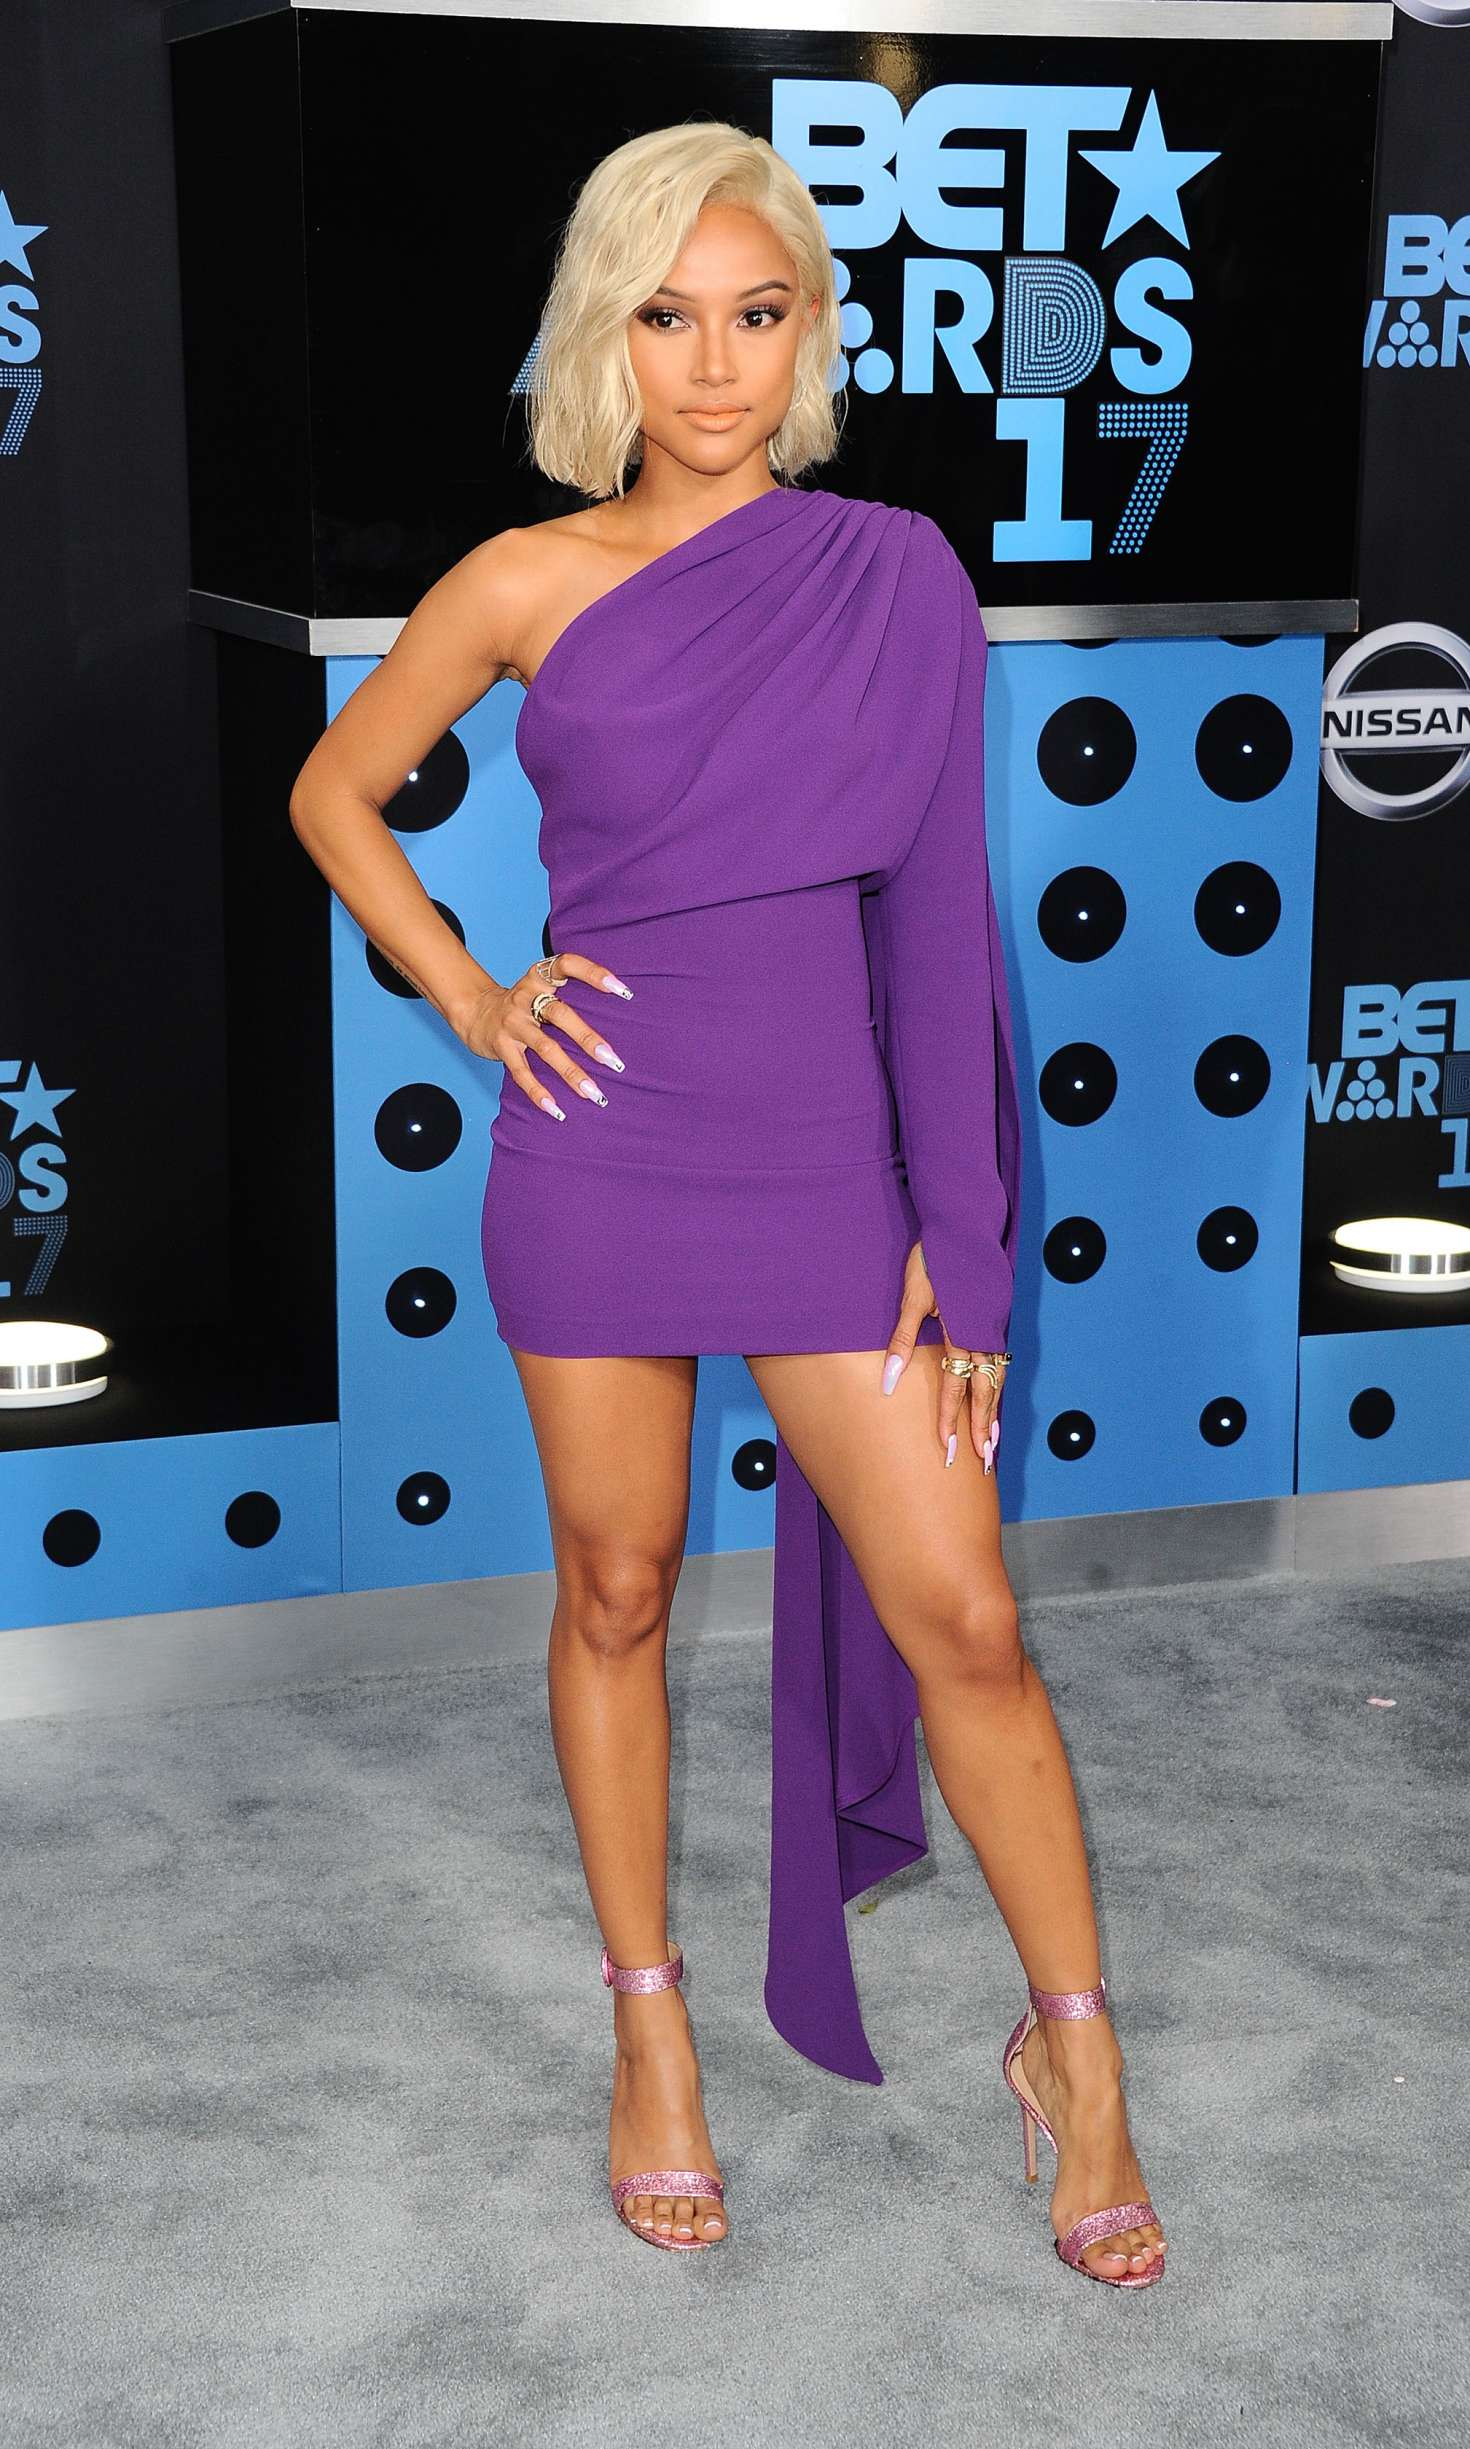 Karrueche tran at 2019 bet awards in los angeles nudes (33 pic)